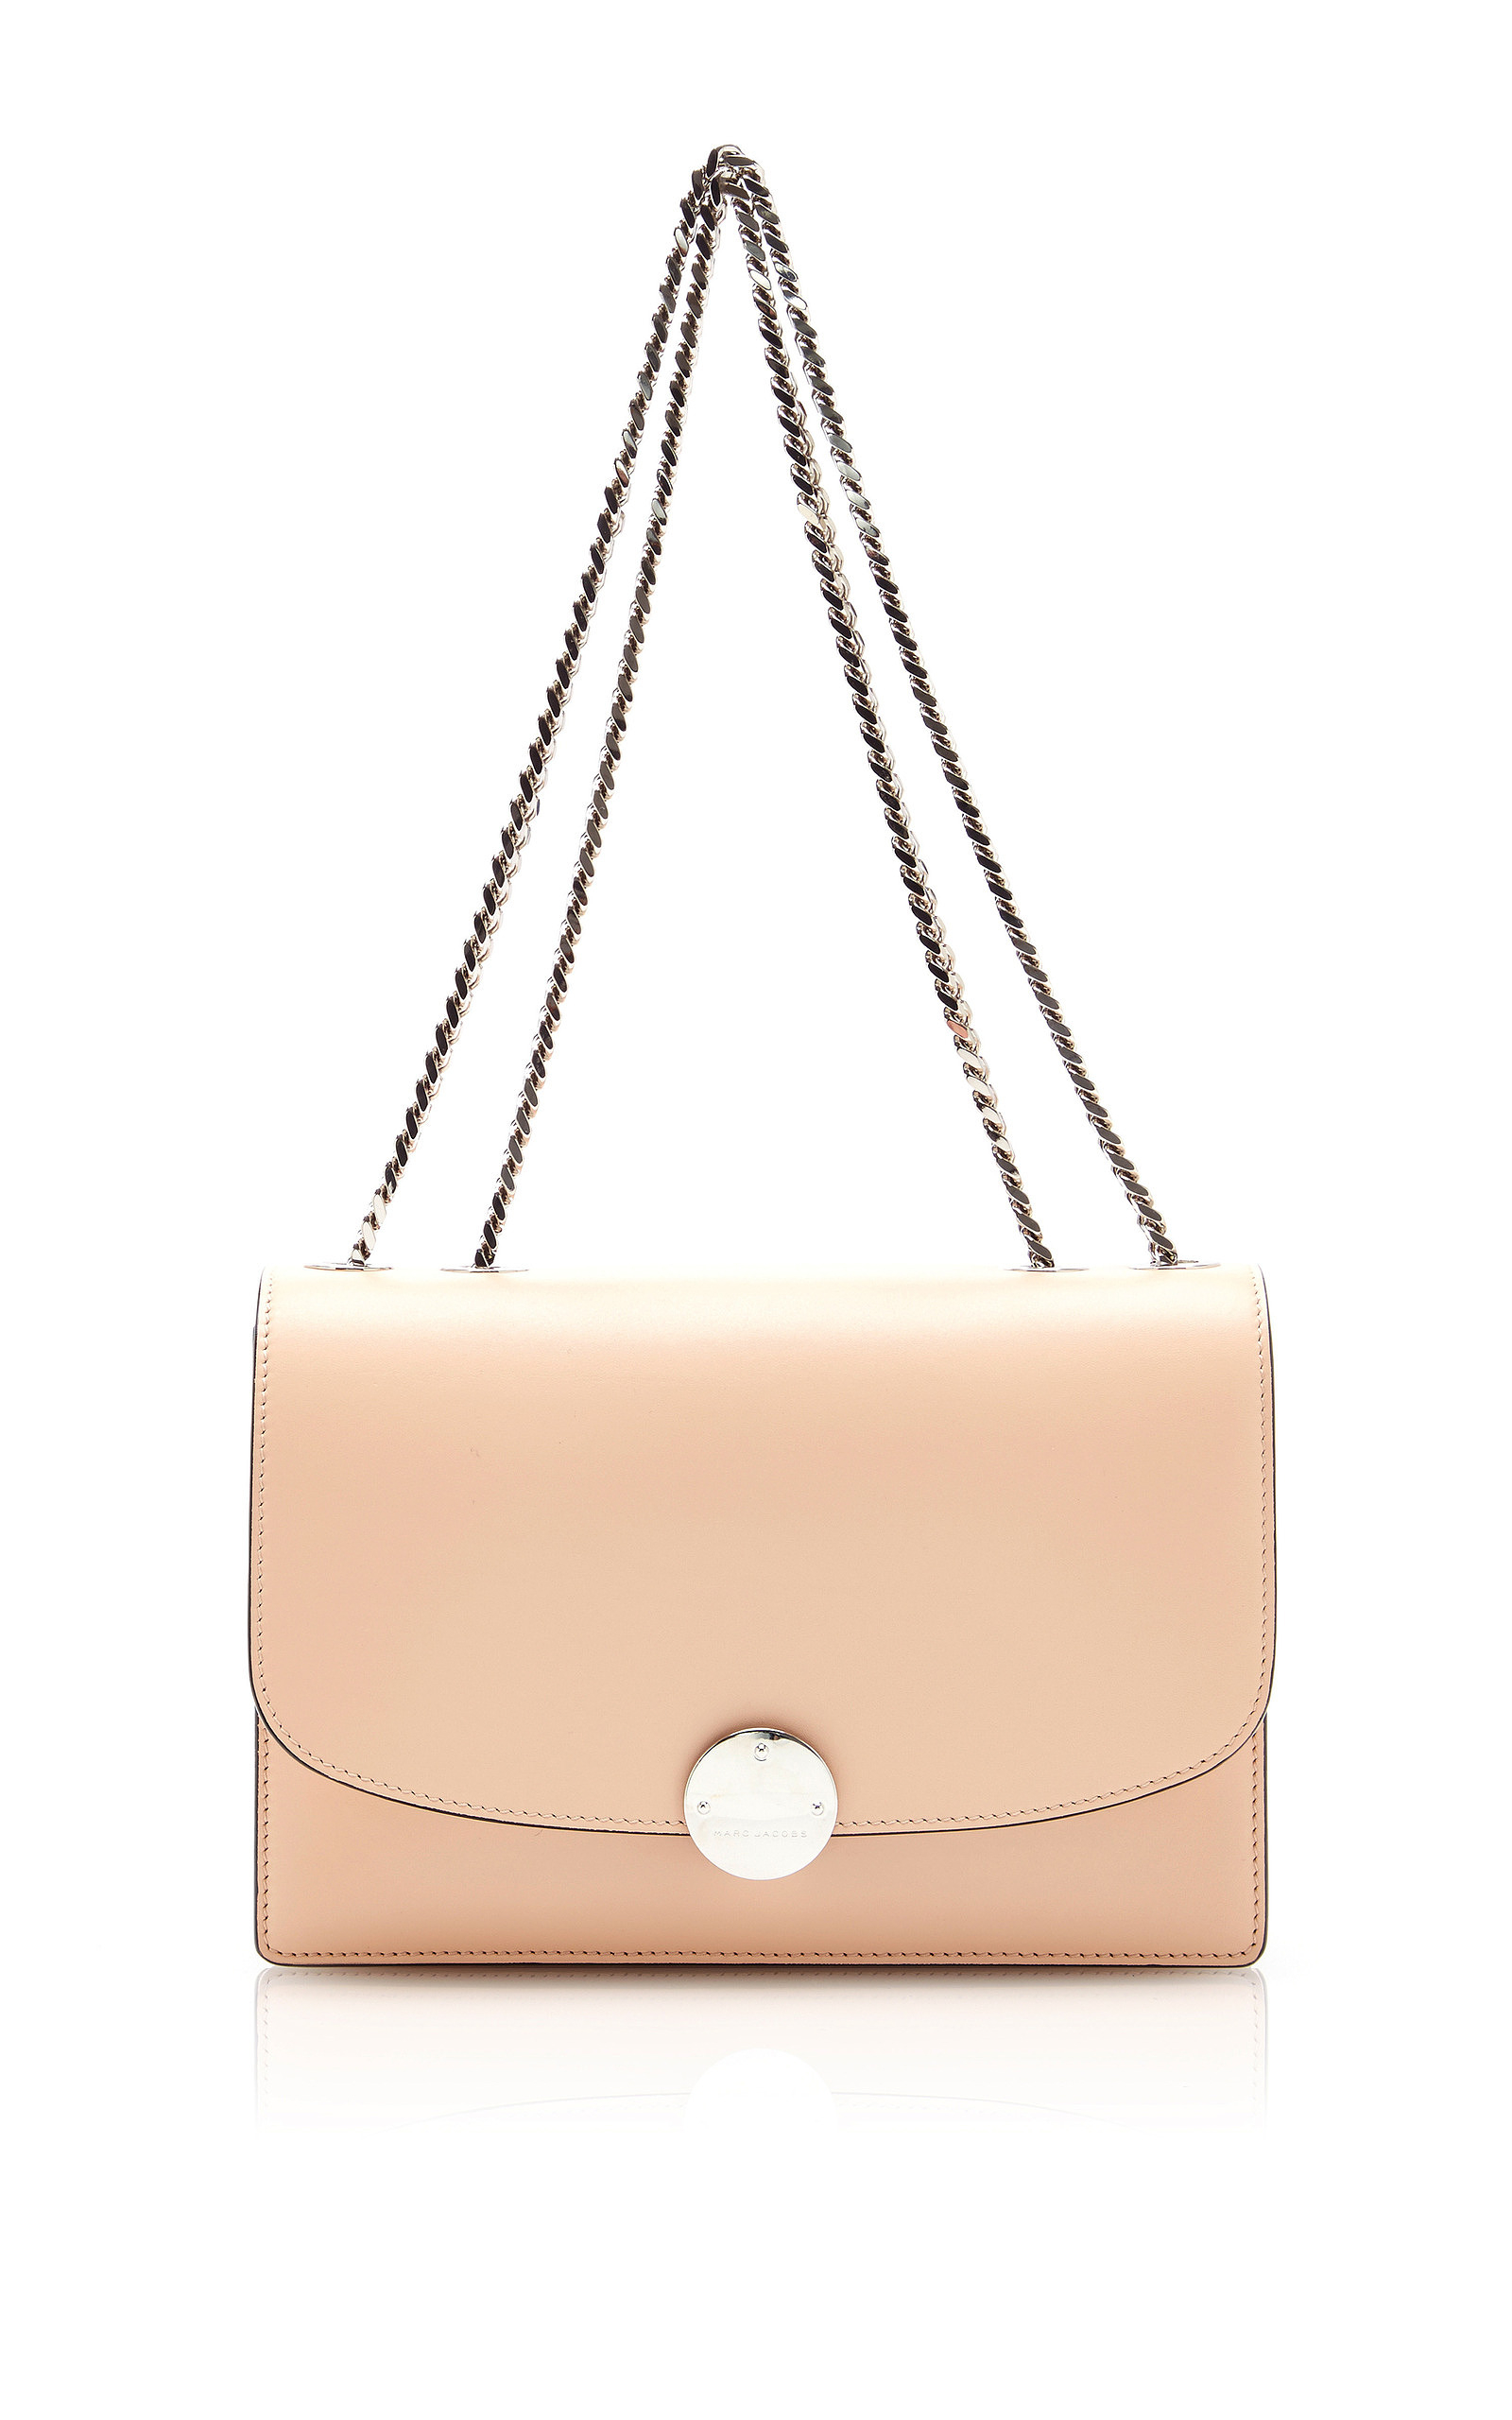 Marc jacobs Trouble Leather Shoulder Bag In Nude in Natural | Lyst